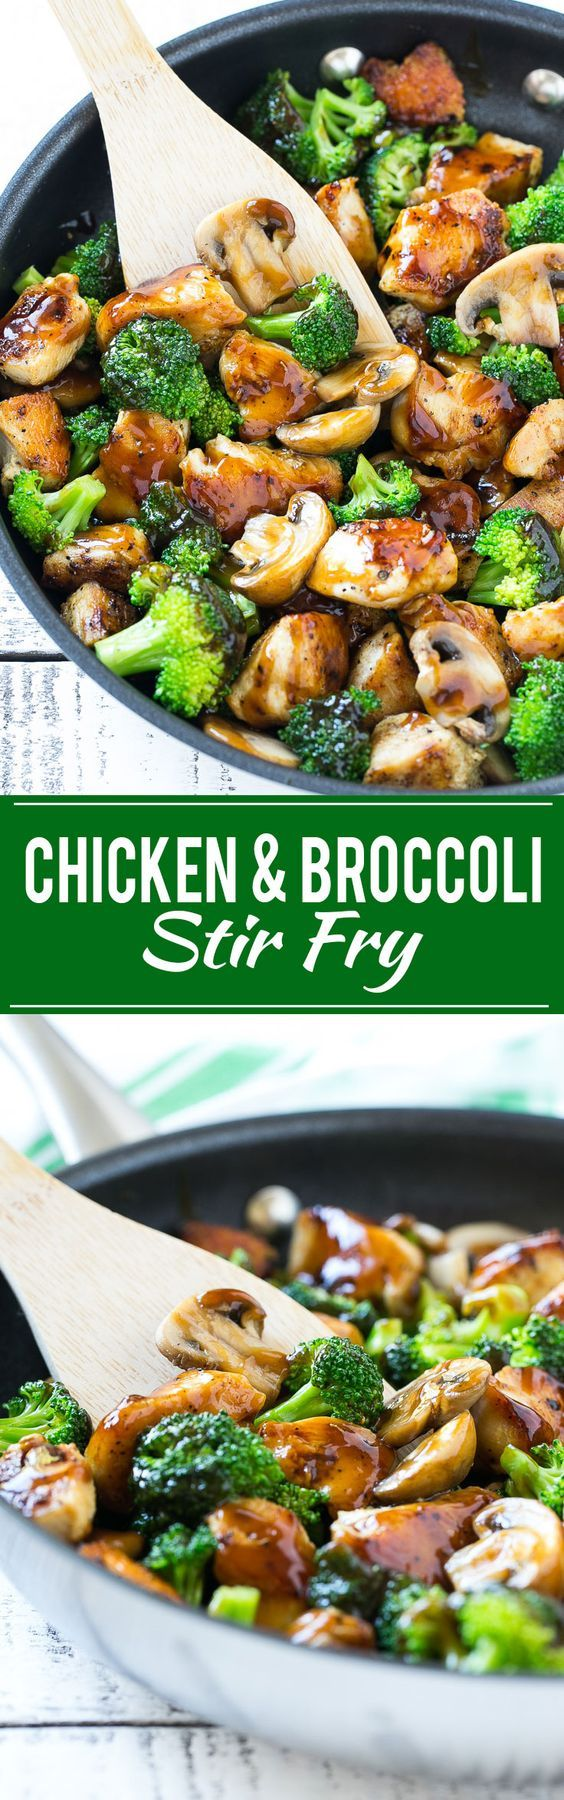 This recipe for chicken and broccoli stir fry is a classic dish of chicken sauteed with fresh broccoli florets and coated in a savory sauce. You can have a healthy and easy dinner on the table in 30 minutes! ad @kitchenfairus Lauren B Montana